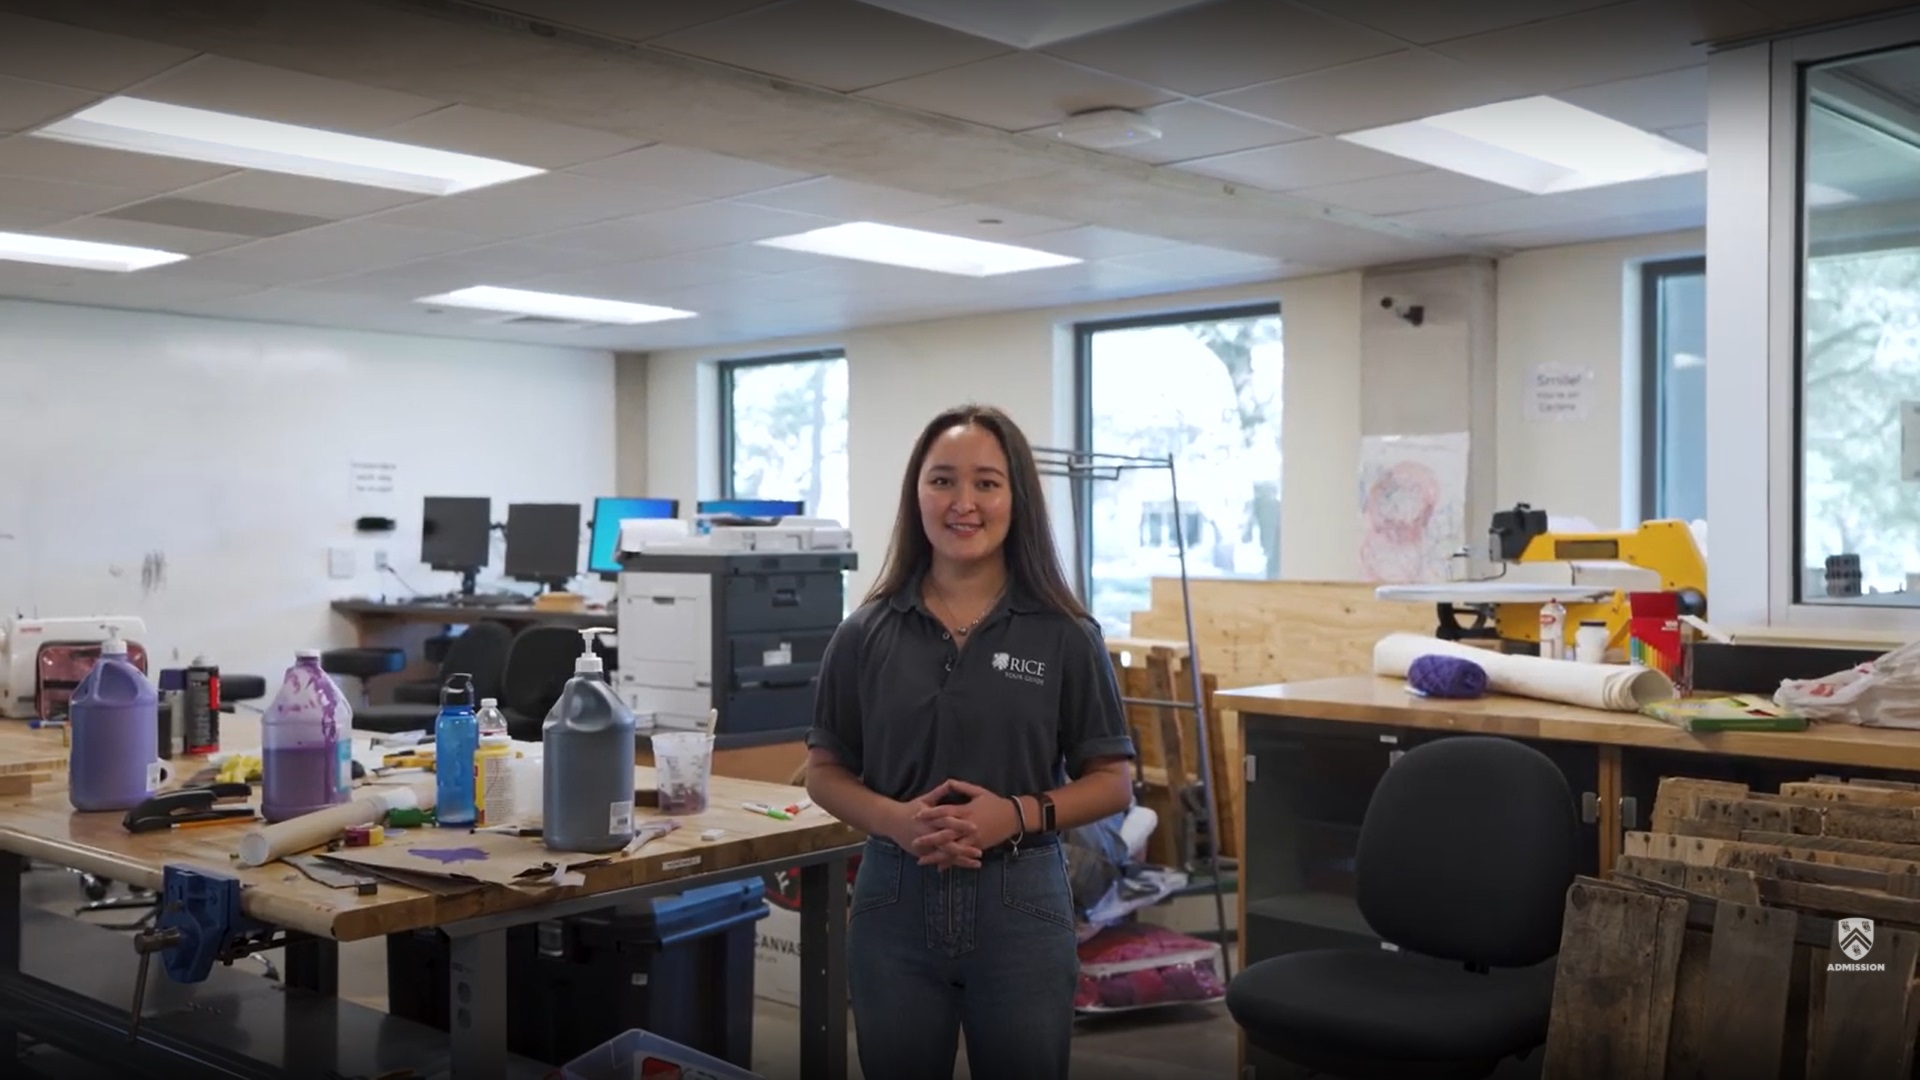 Student stands in the middle of a workroom inside McMurtry College called the McMurtry Innovation Space.